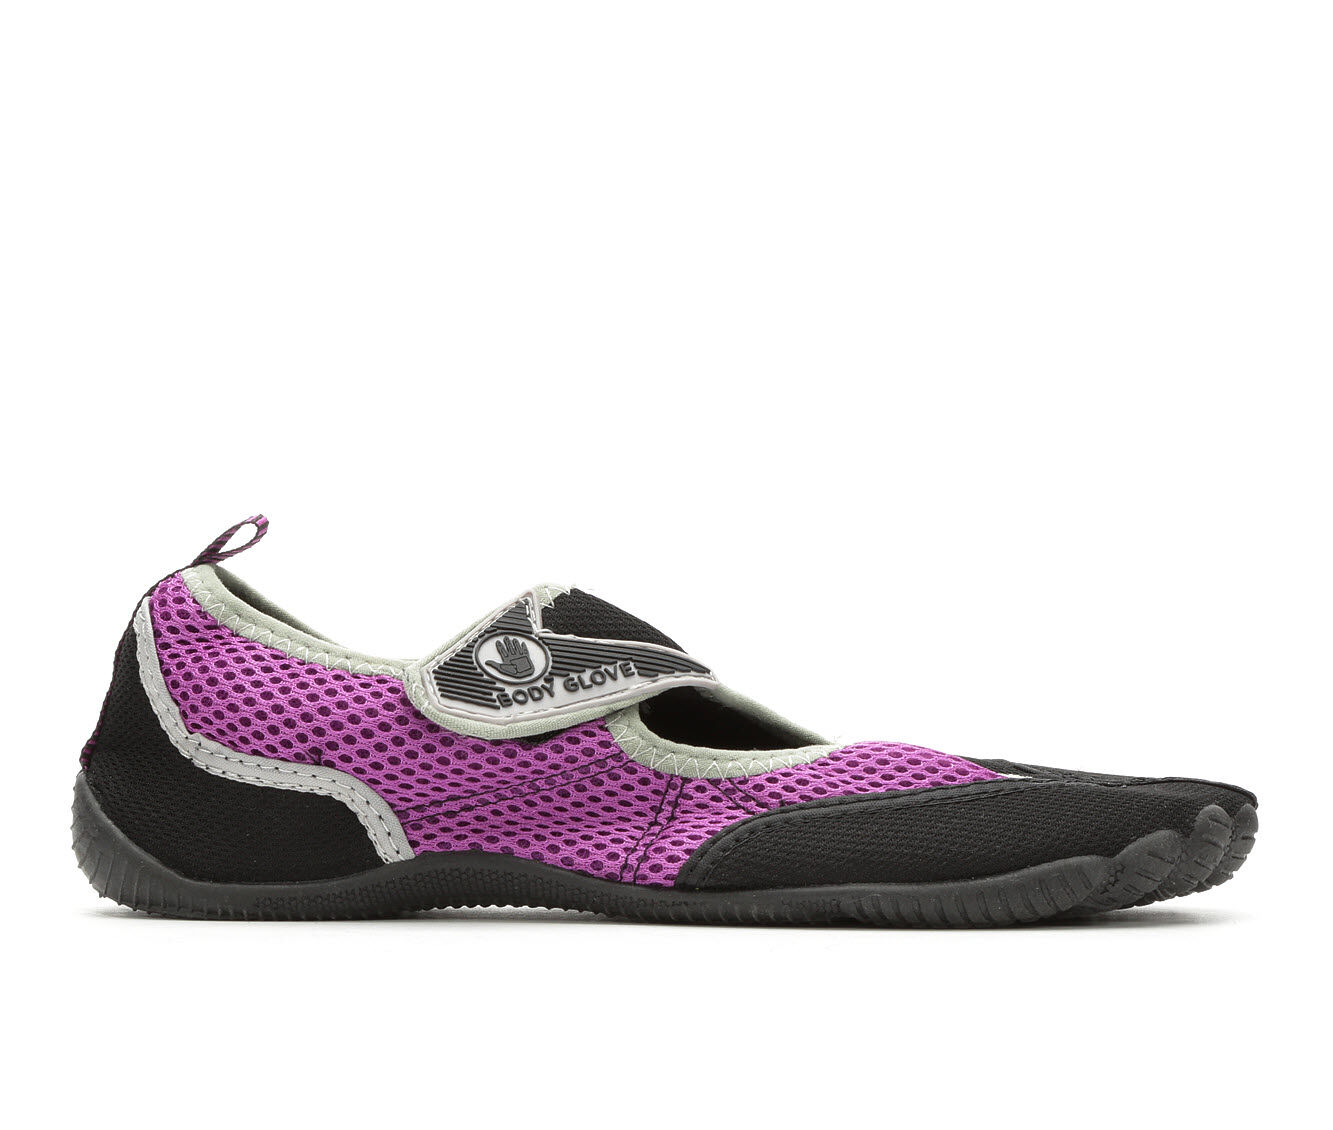 purchase comfortable Women's Body Glove Horizon Water Shoes Black/Oasis Pur